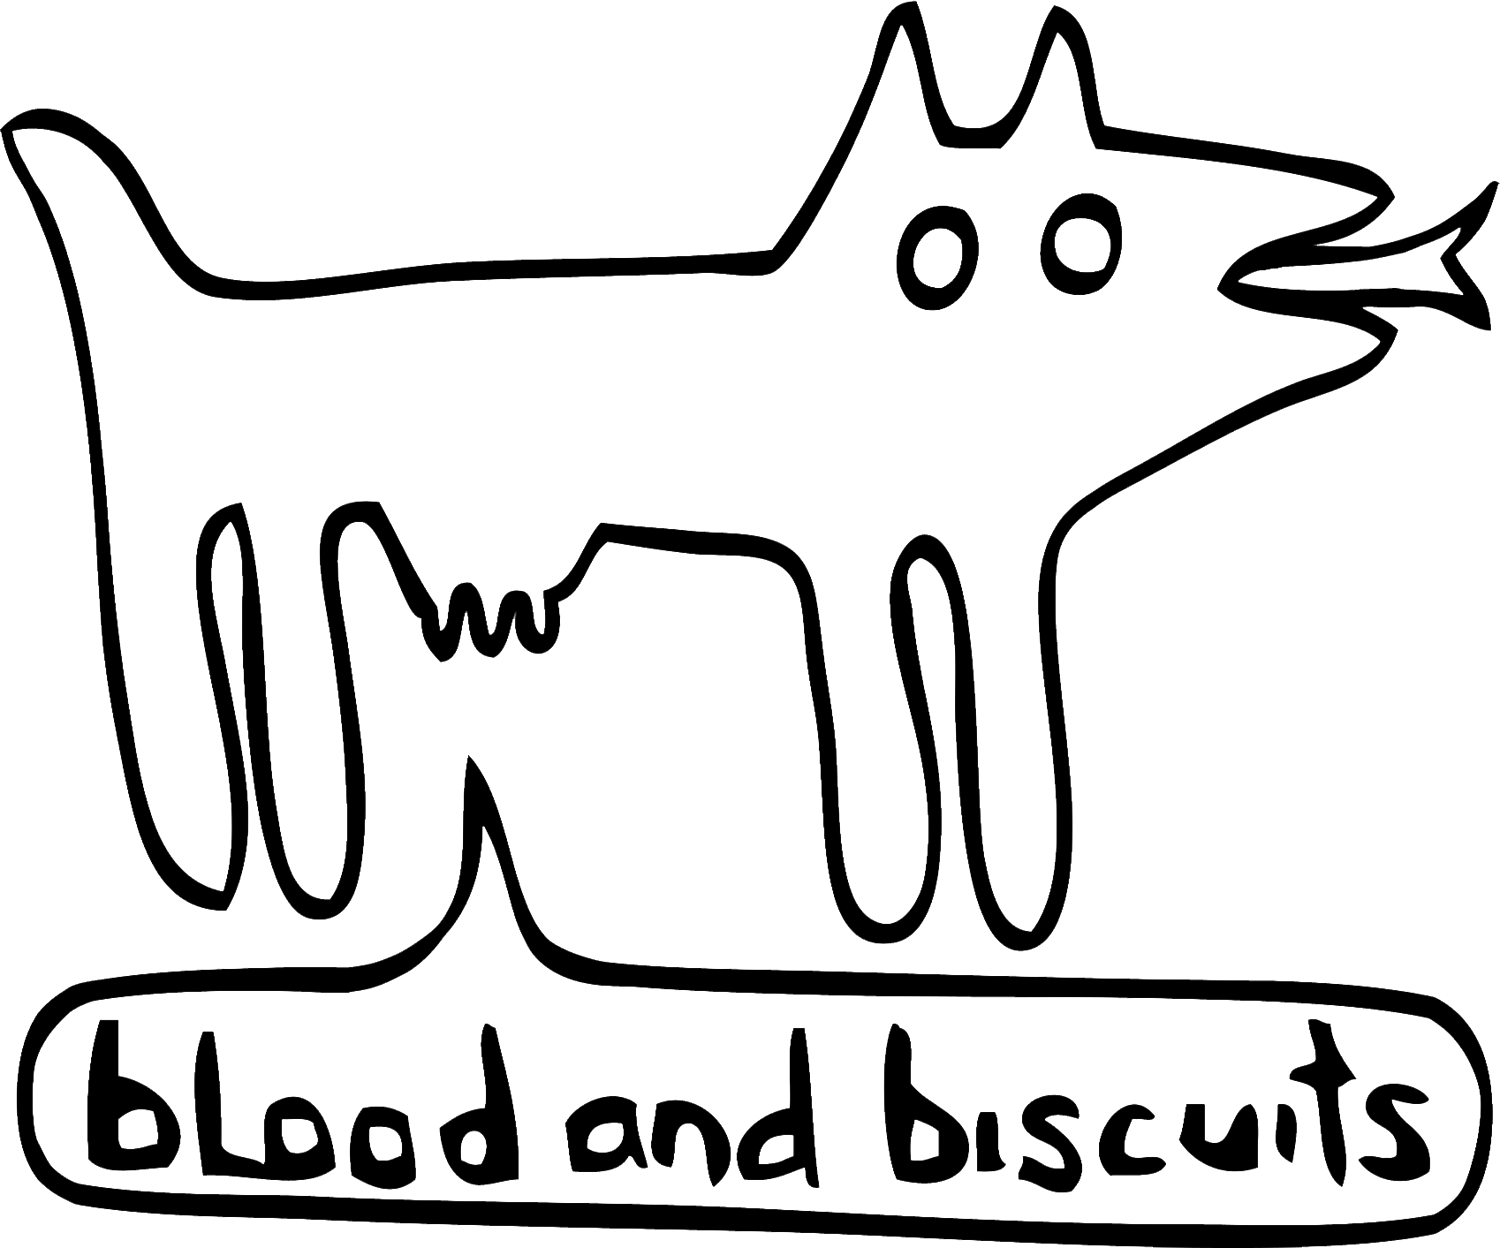 BLOOD AND BISCUITS